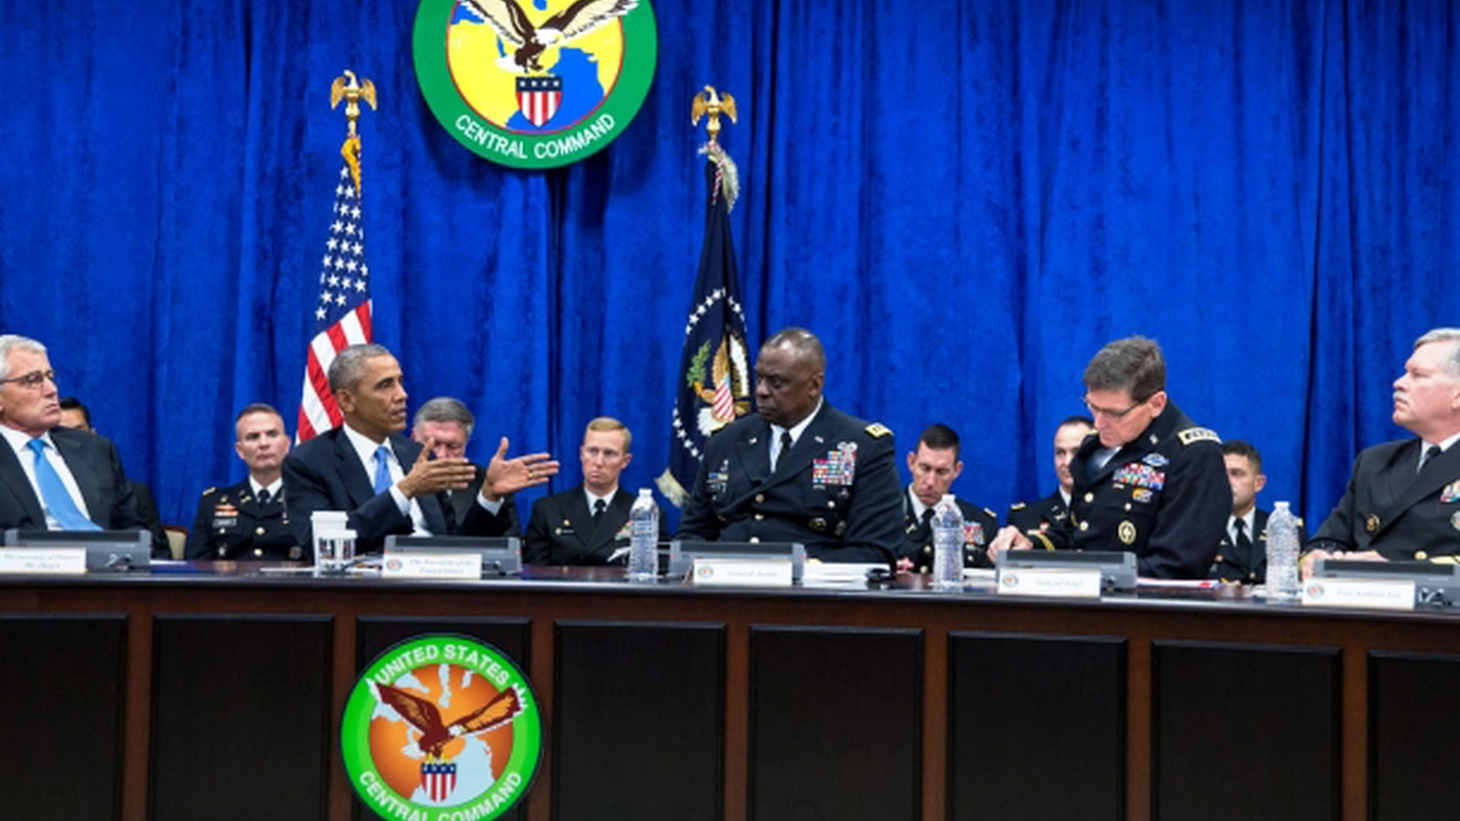 As promised, President Obama has followed airstrikes in Iraq with even bigger airstrikes in Syria. Has the War on Terror become a permanent US policy? Has the stage been set for US combat forces to go back to the Middle East?